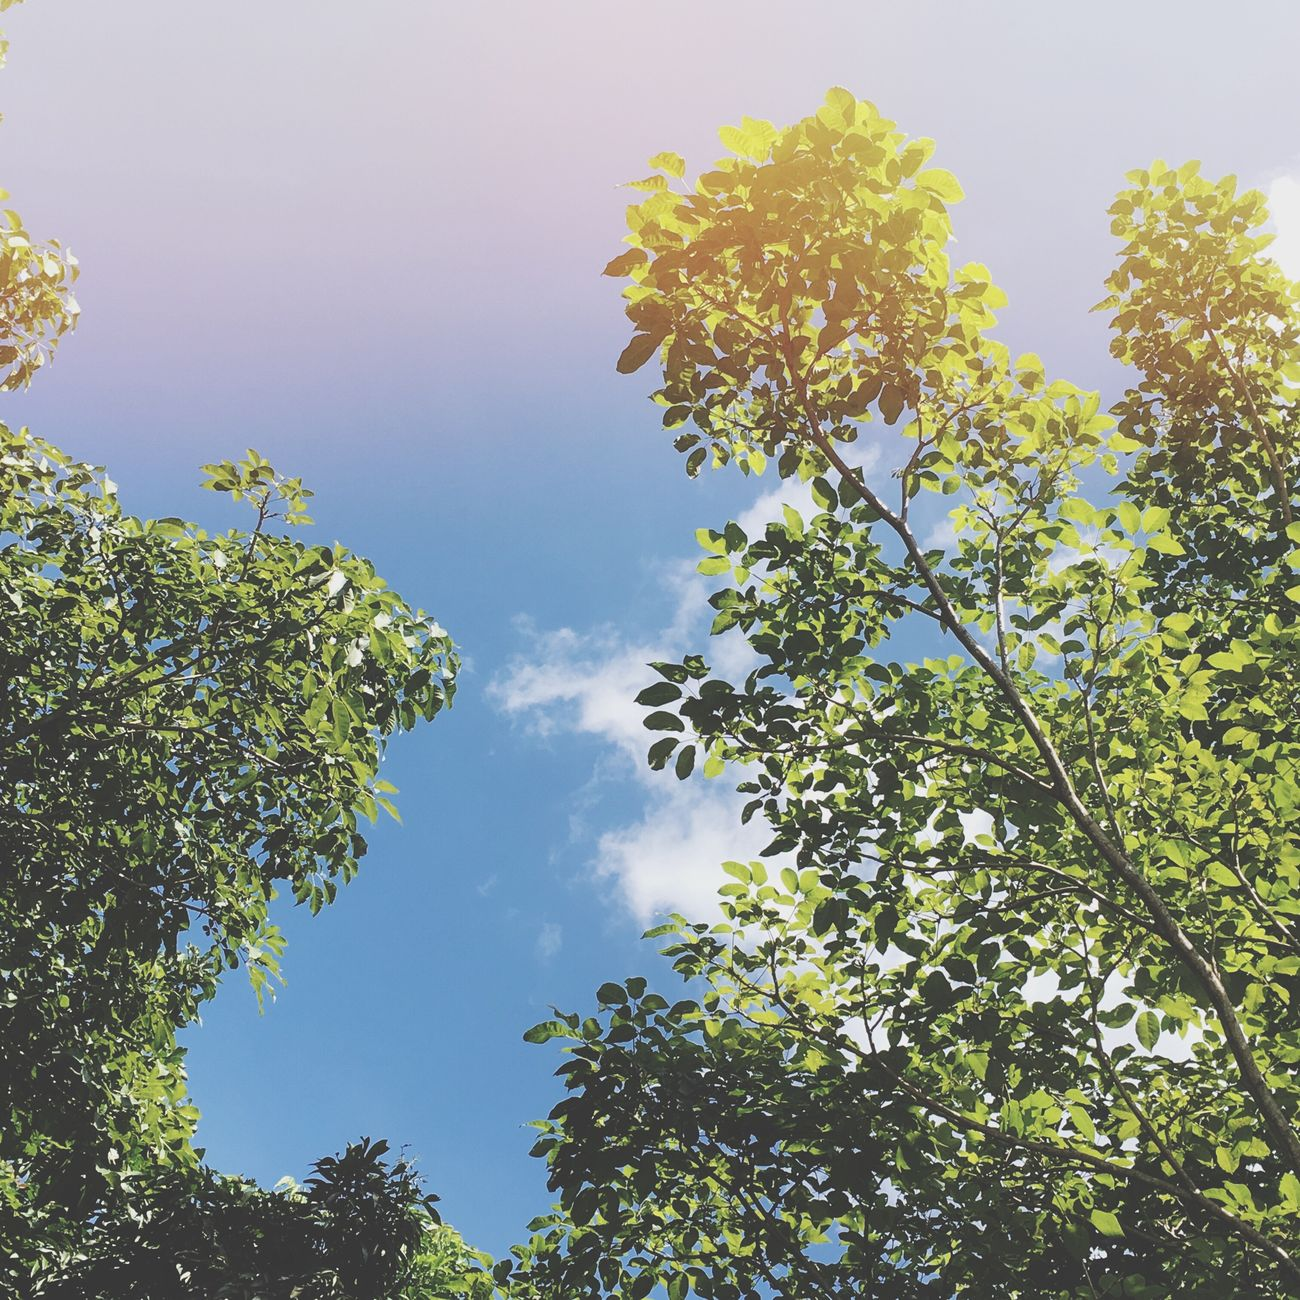 Tree Low Angle View Branch Growth Sky Leaf Scenics Green Color Tranquility Nature Beauty In Nature Day Tranquil Scene Cloud Green Outdoors High Section Blue Treetop Cloud - Sky